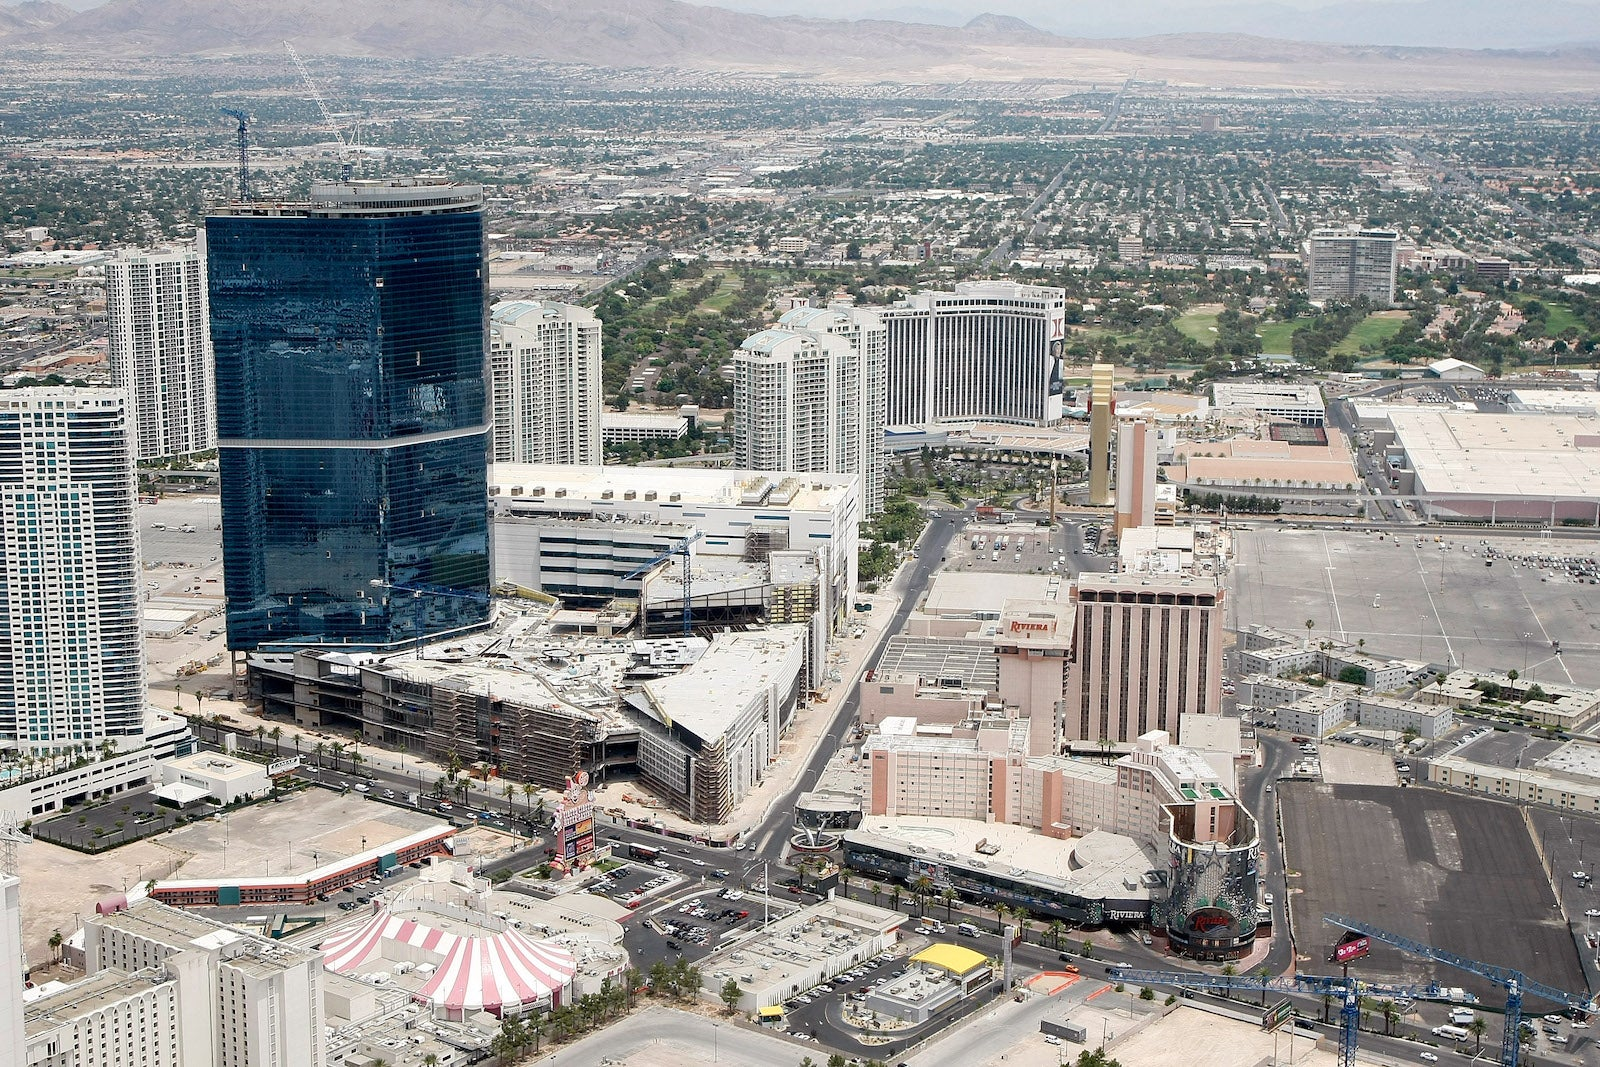 Doomed from the start: Marriott just pulled out of the Las Vegas Fontainebleau project